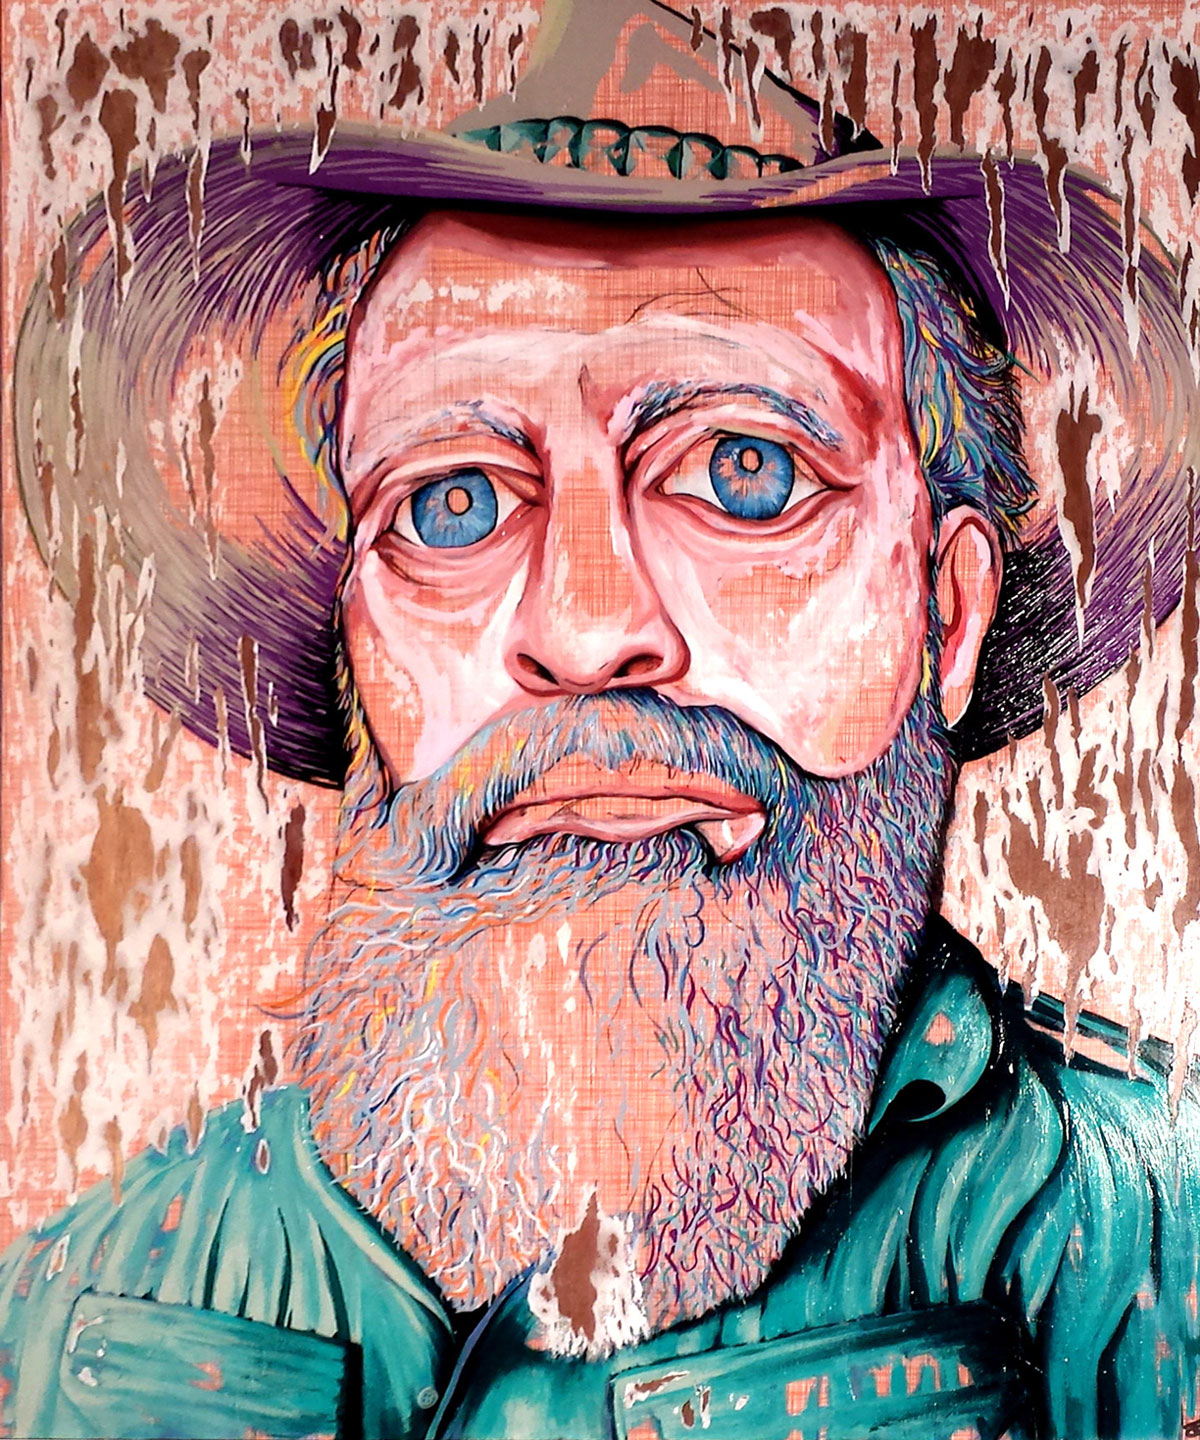 HAT FITZ BEARDED BLUES BY DARREN TREBILCO 2014 ARCHIBALD PORTRAIT ENTRY